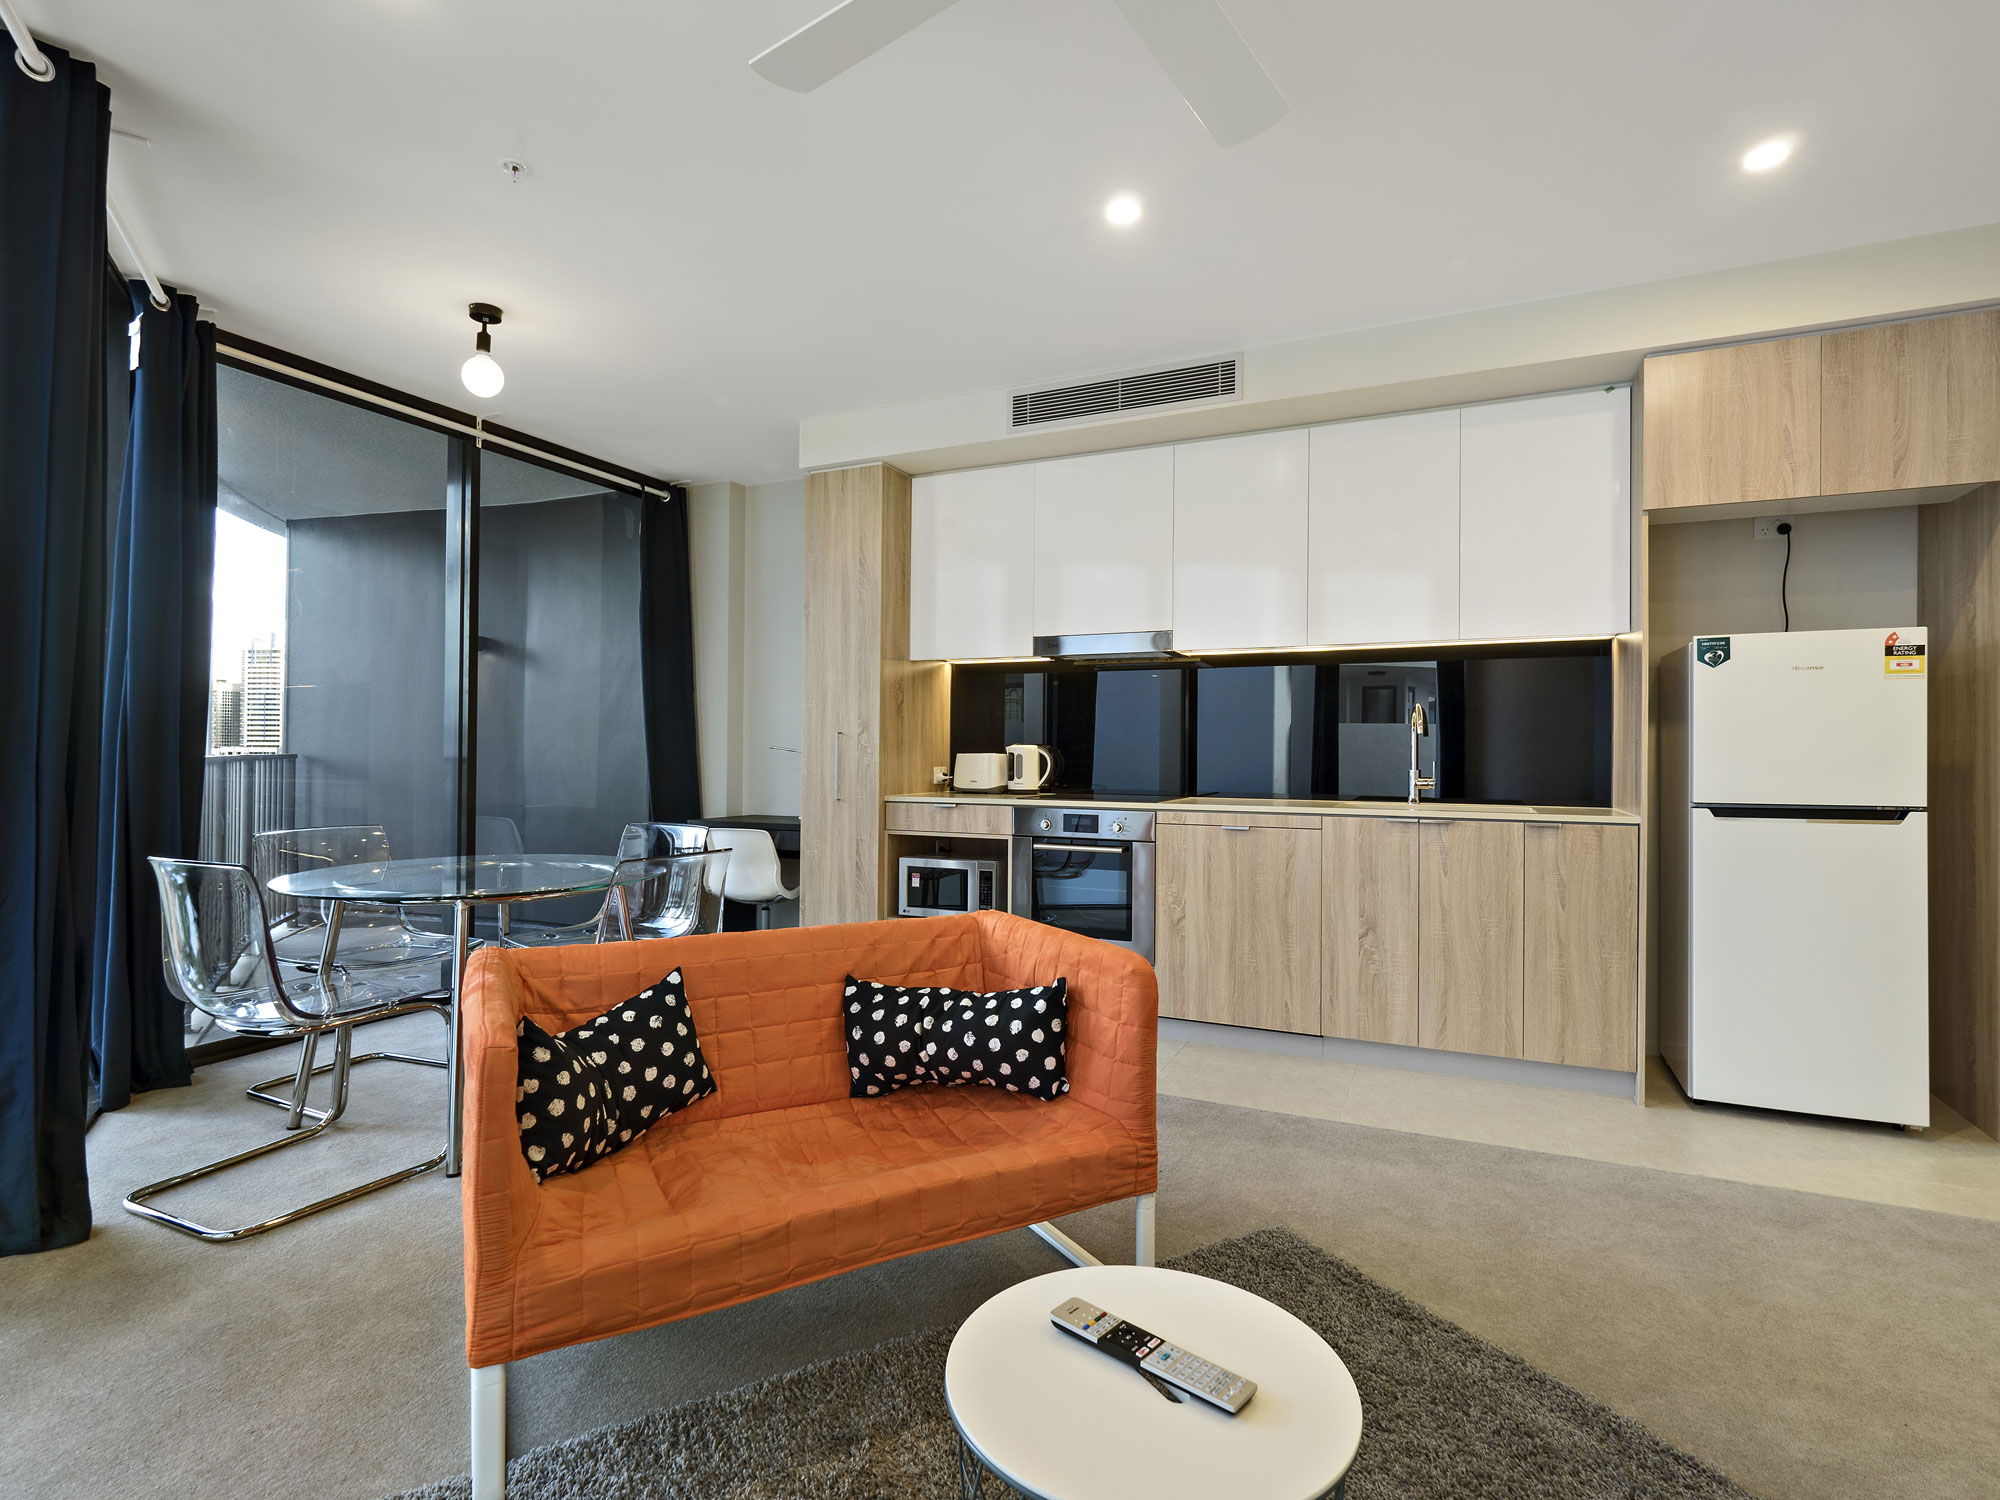 Apartment photography in Brisbane by Phil Savory